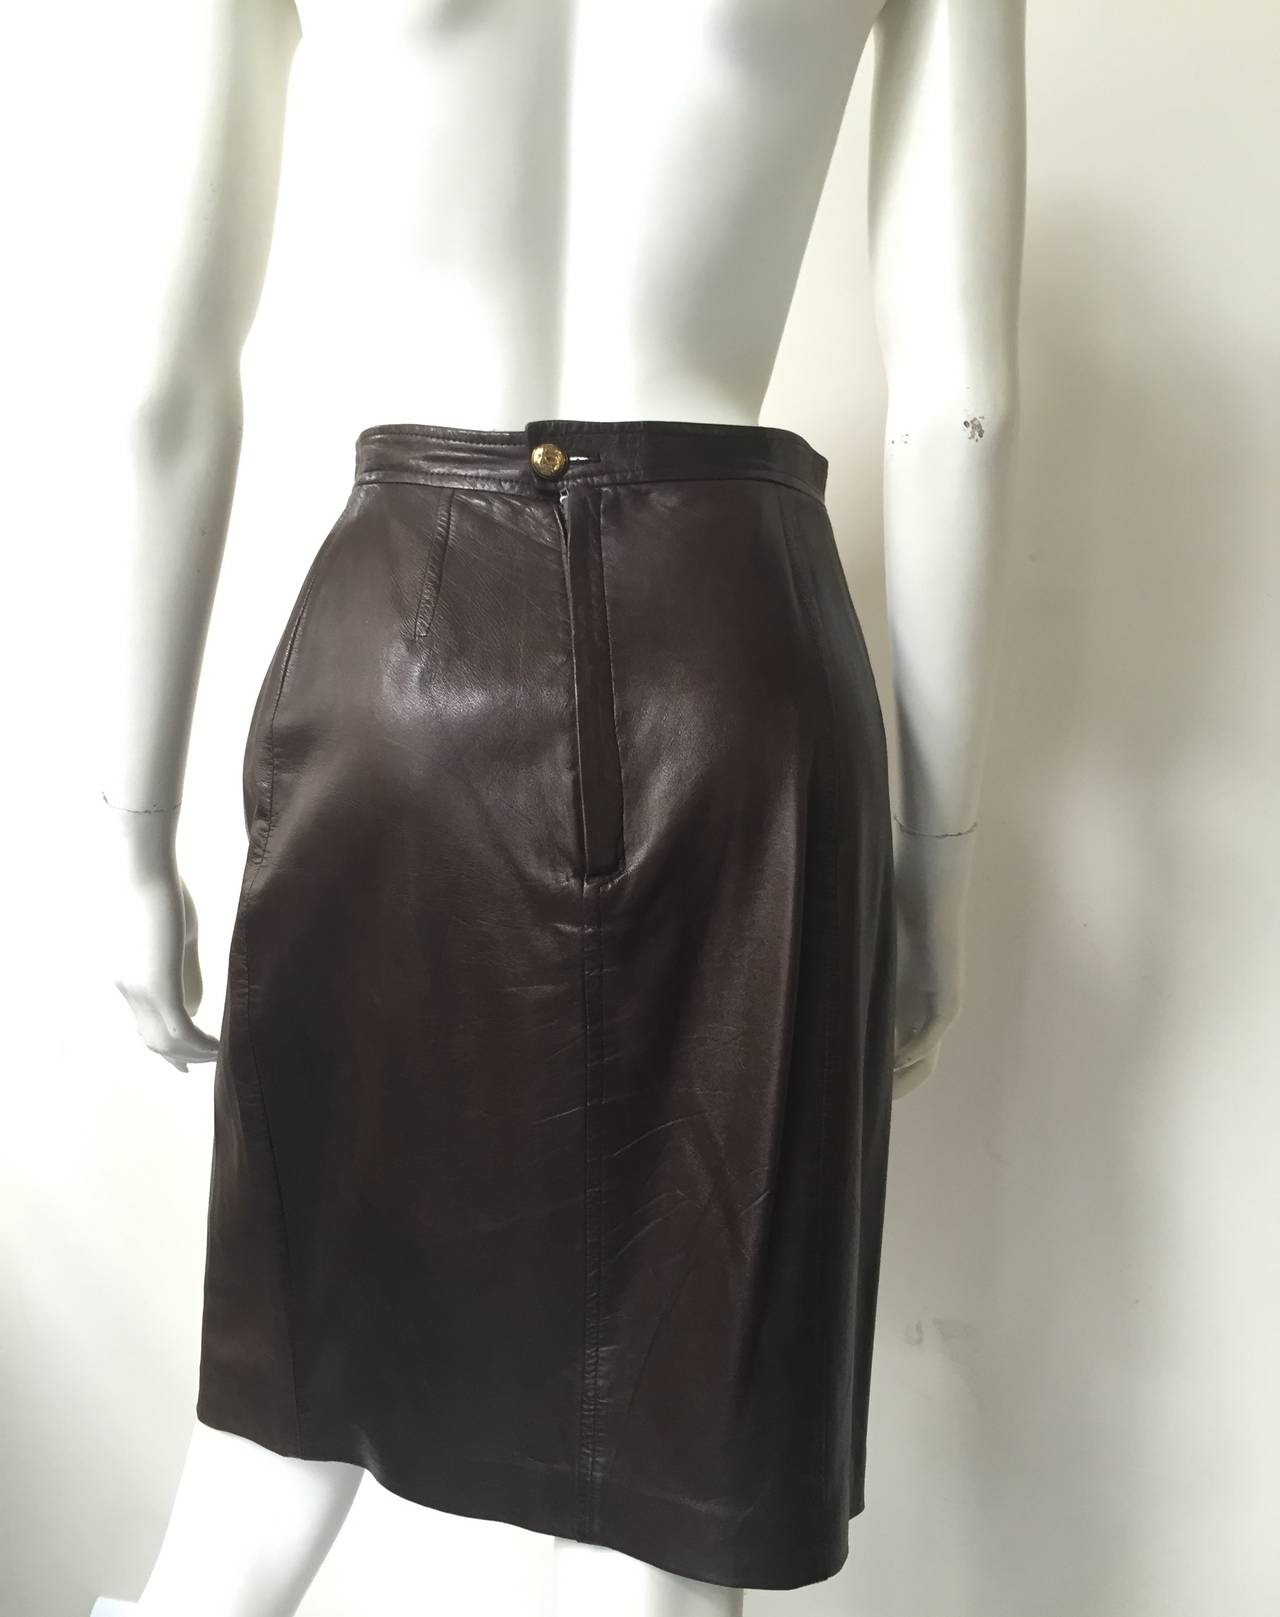 Chanel 80s brown leather skirt size 6. 5